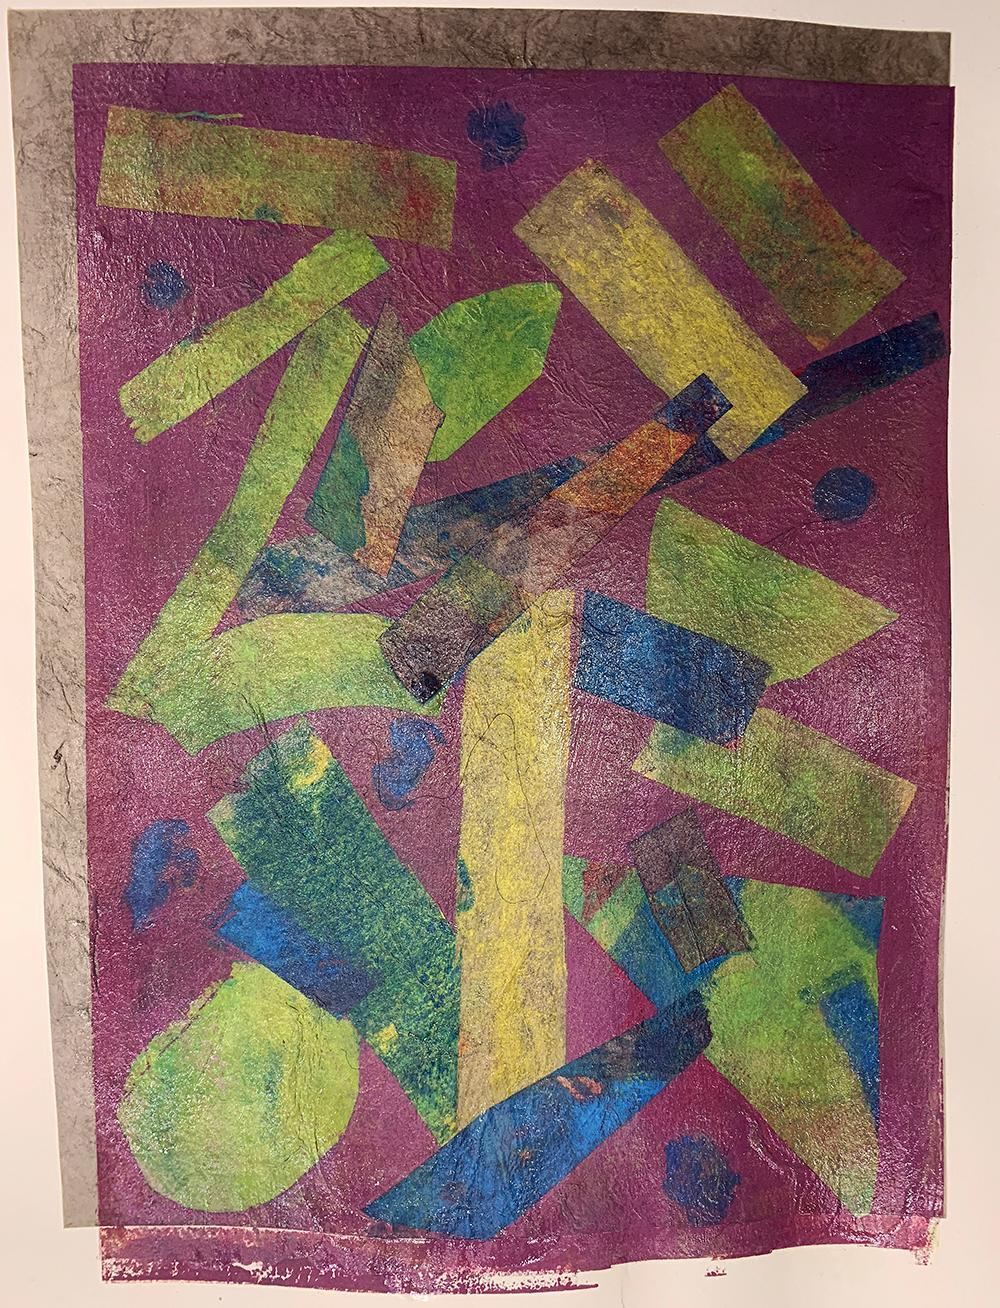 Intuition, Monotype, Unique Contemporary Abstract Work on Paper, Original Print